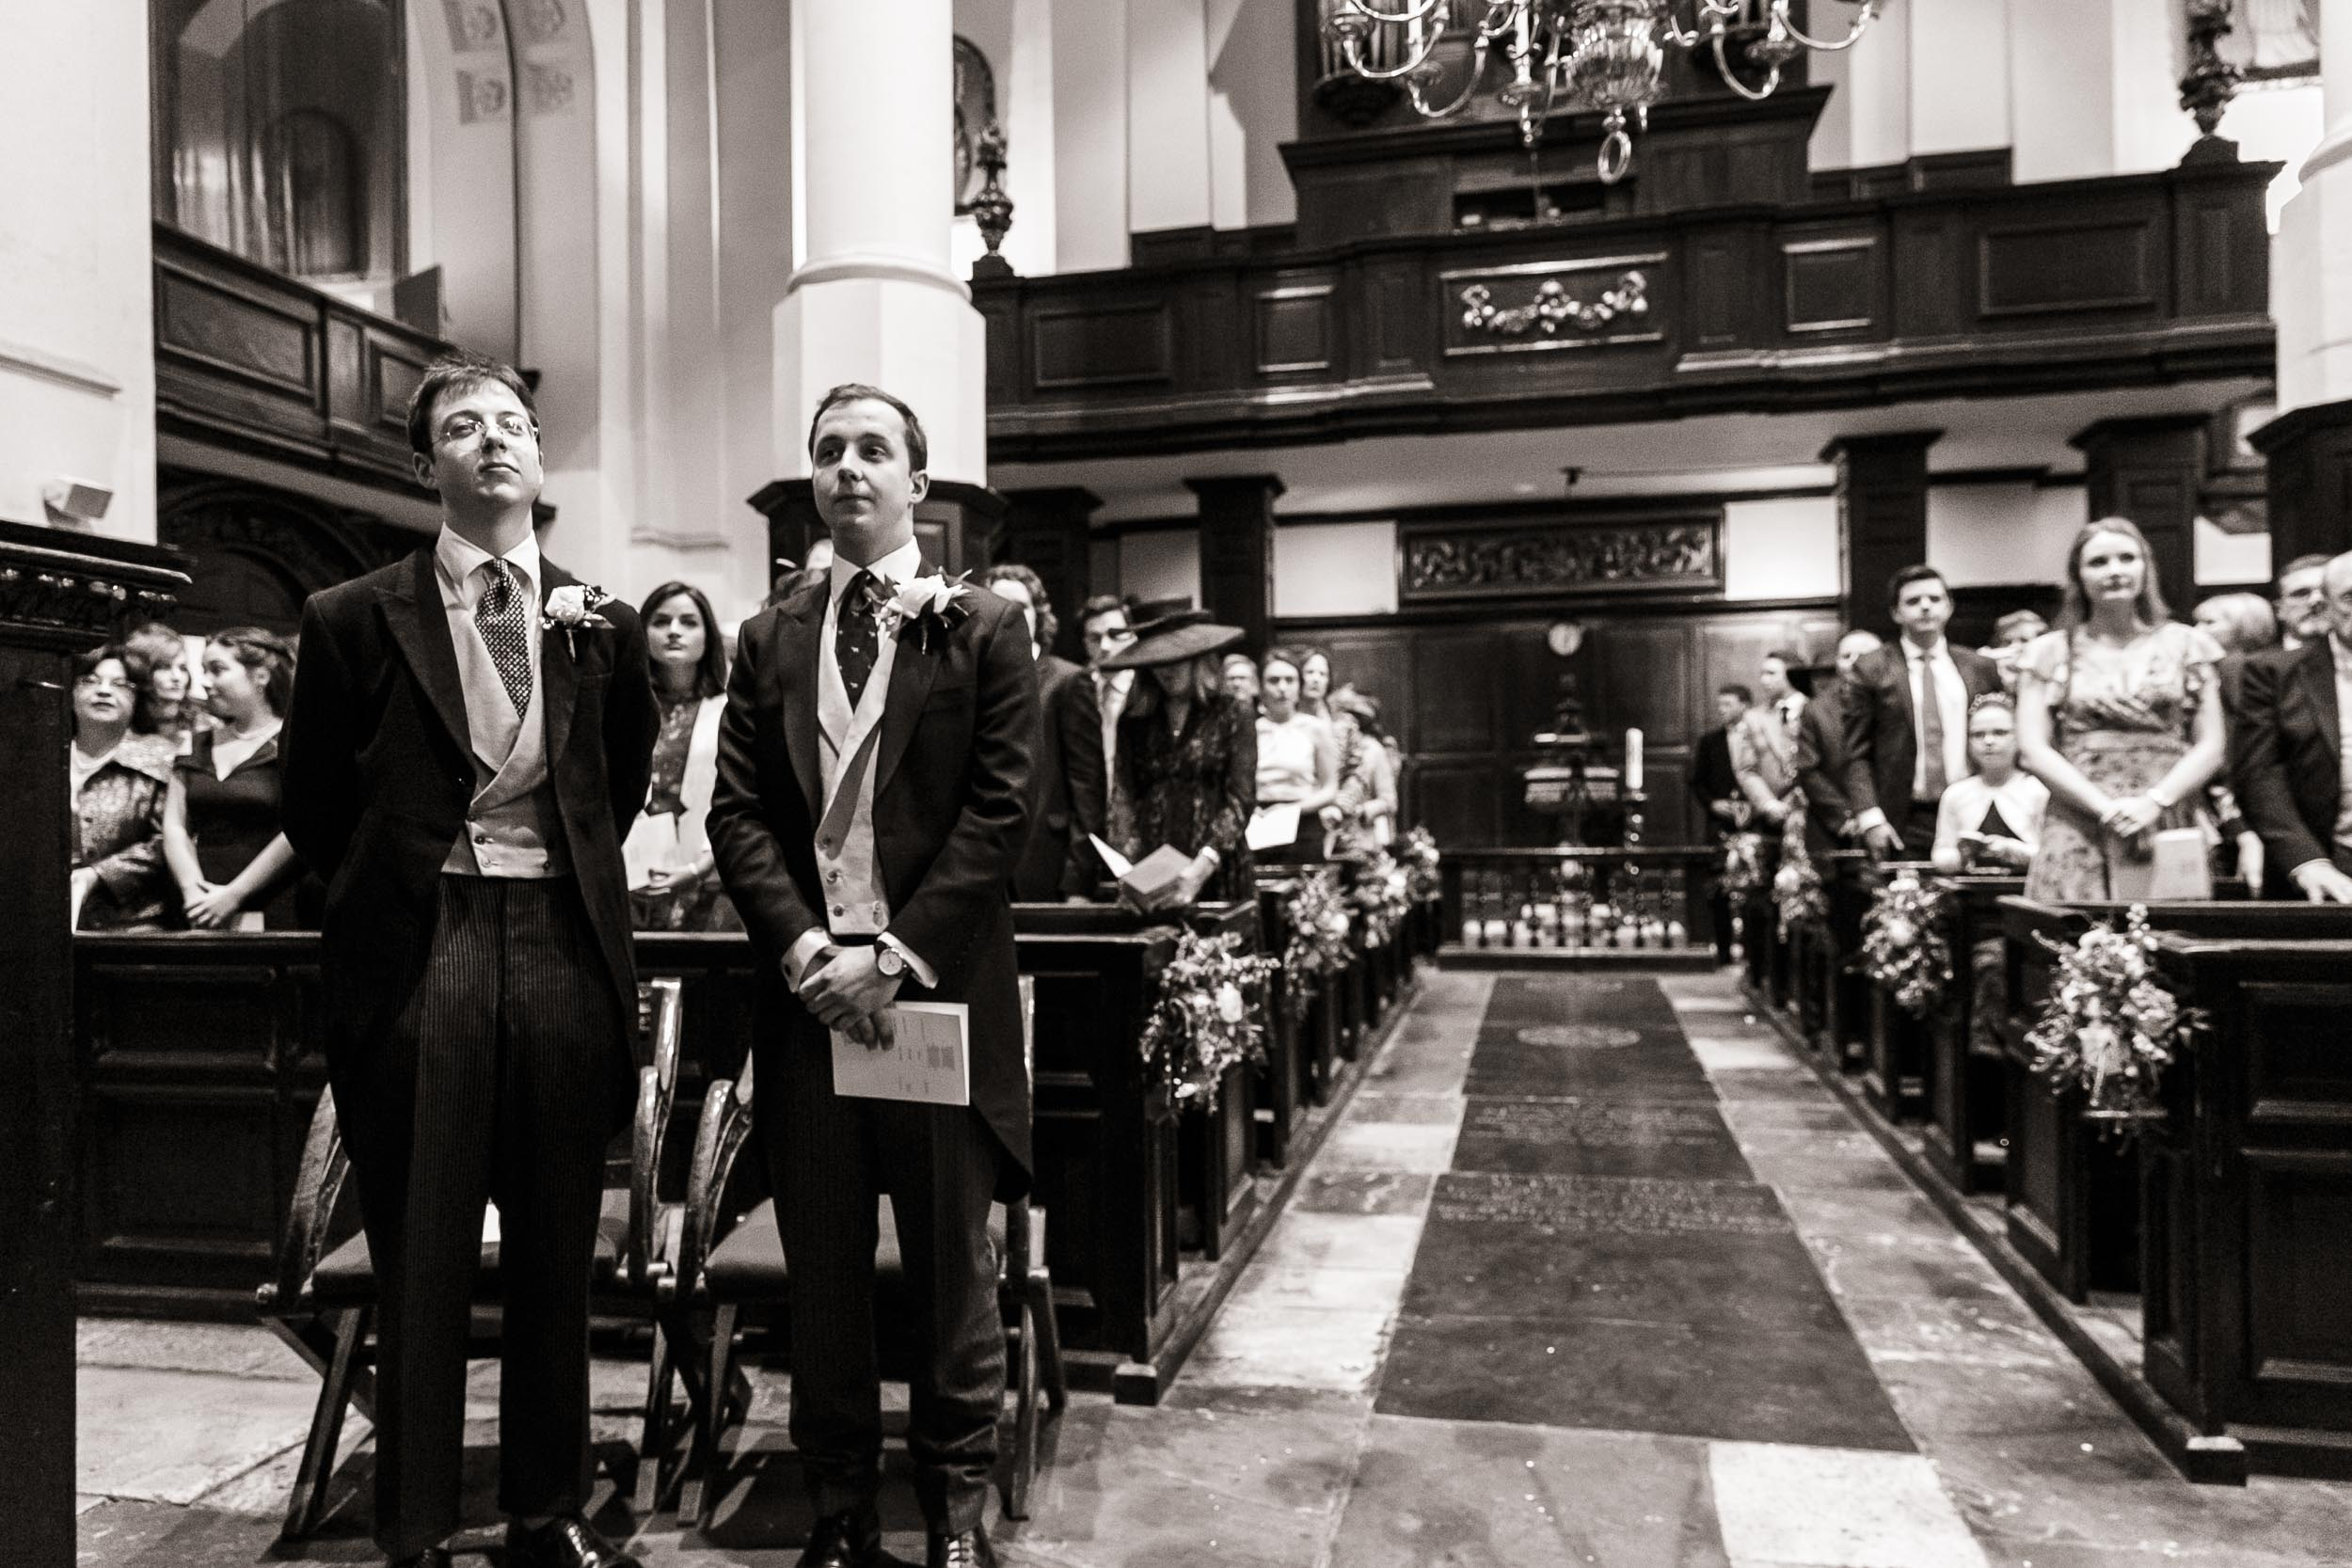 stationers-hall-wedding-photographer-london 024.jpg